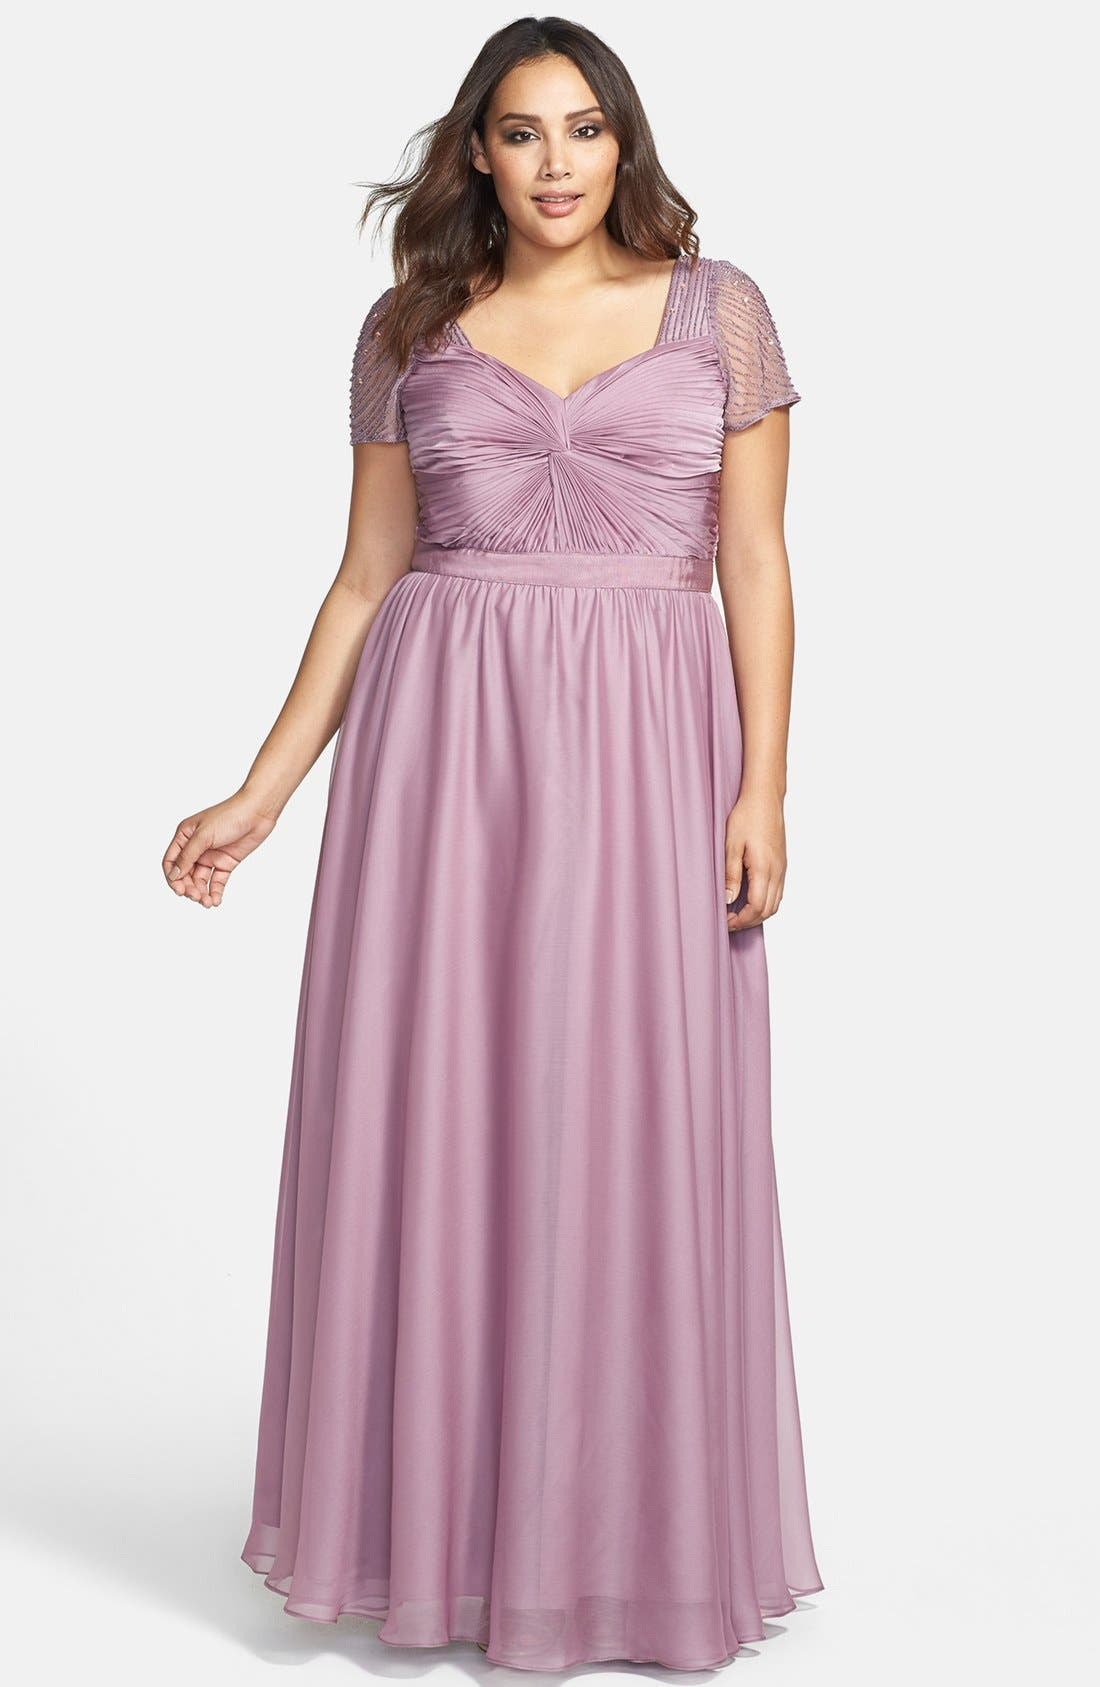 Alternate Image 1 Selected - Adrianna Papell Beaded Flutter Sleeve Gown (Plus Size)